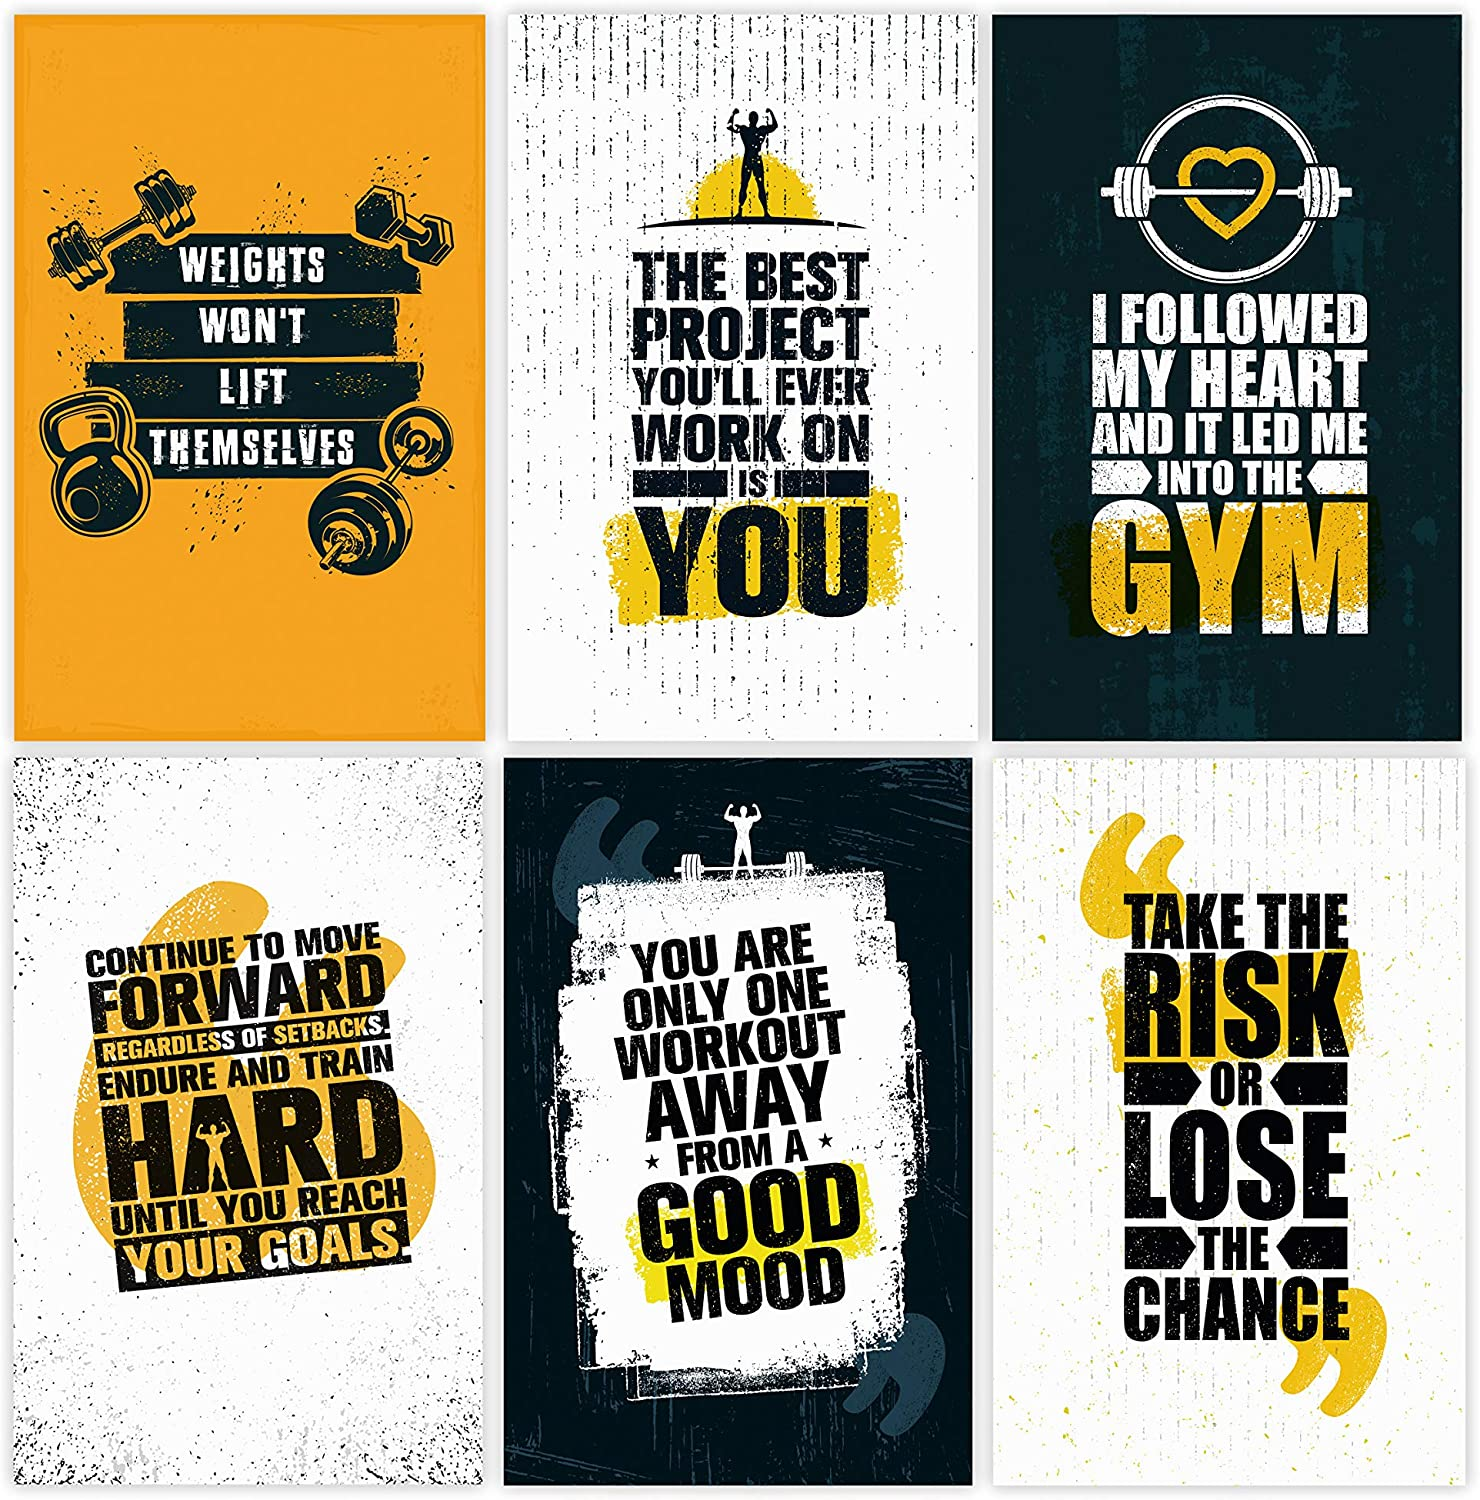 Amazon Com Set Of 6 11x17 Inspirational Gym Posters Motivational Fitness Wall Art For Home Gym Decorations Bodybuilding Poster For Teens Workout Prints With Motivation Quotes For Room Decor Posters Prints